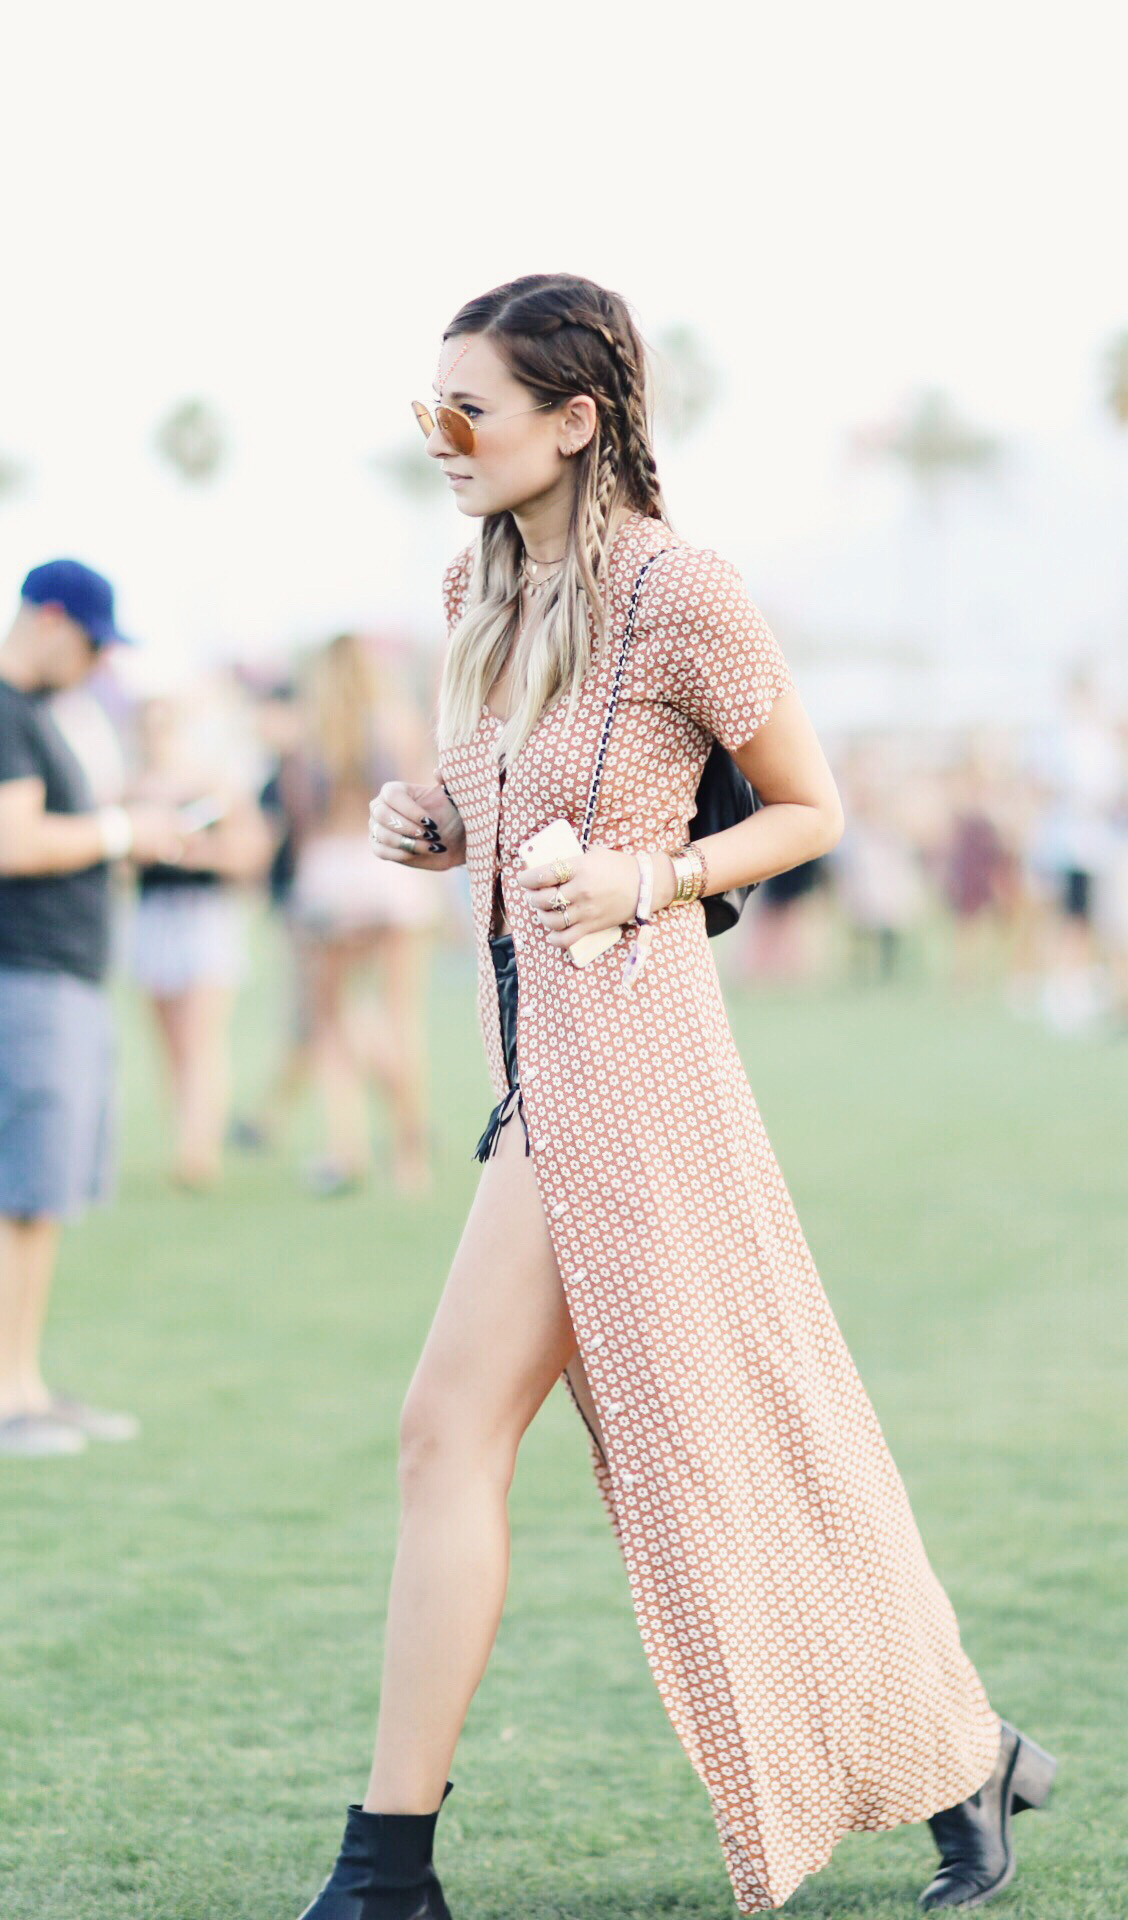 Fashion Blogger Outfits Of Coachella 2015 Just The Design